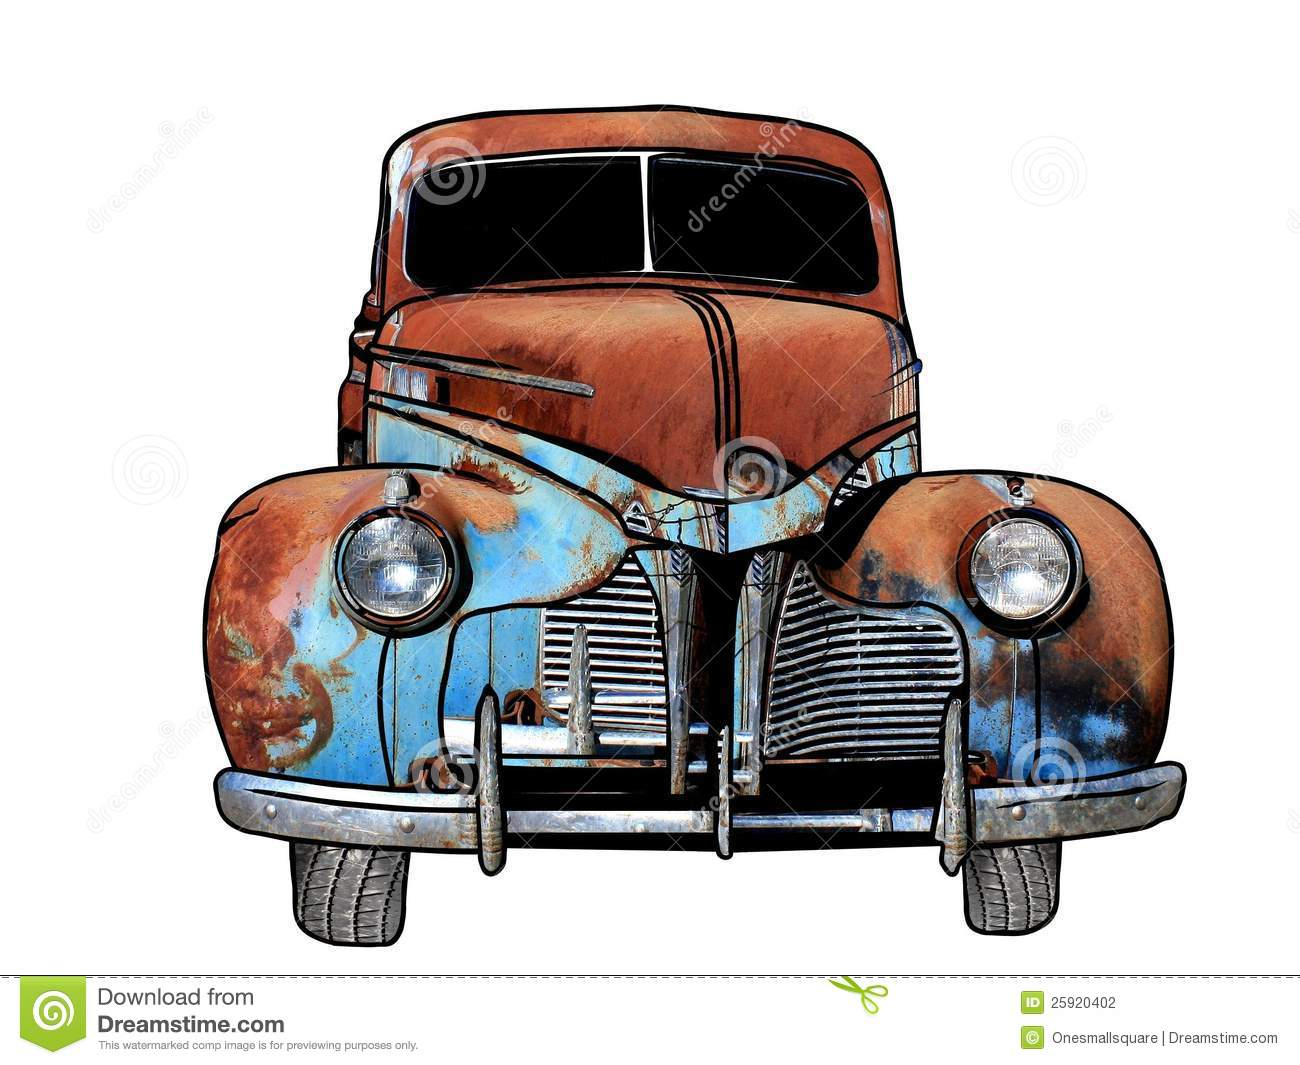 Rusty cars clipart - Clipground